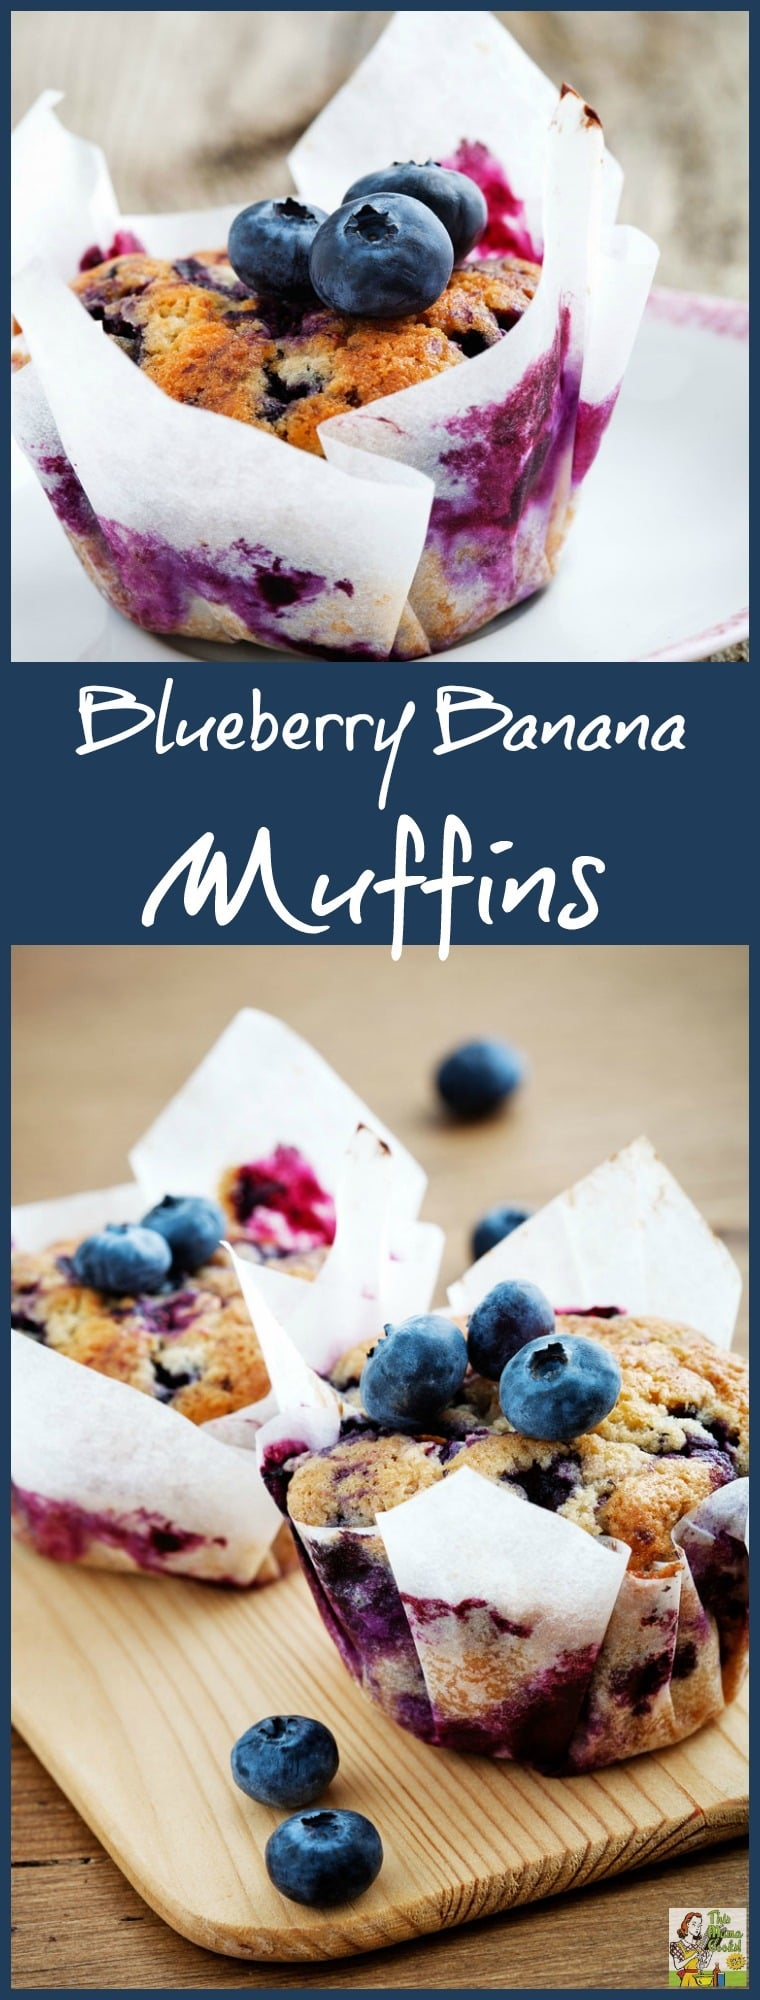 Looking for Jillian Michaels recipes from The Master Your Metabolism Cookbook? Here's a recipe for blueberry yogurt muffins made with bananas that's not only good for you but is easy to make! Make these blueberry yogurt muffins for breakfast, a healthy post-workout snack, or even dessert! #blueberry #yogurt #muffins #muffin #breakfast #snack #dessert #banana #recipe #healthy #healthyrecipe #recipe #jillianmichaels #masteryourmetabolism #baking #easyrecipes #easyrecipe